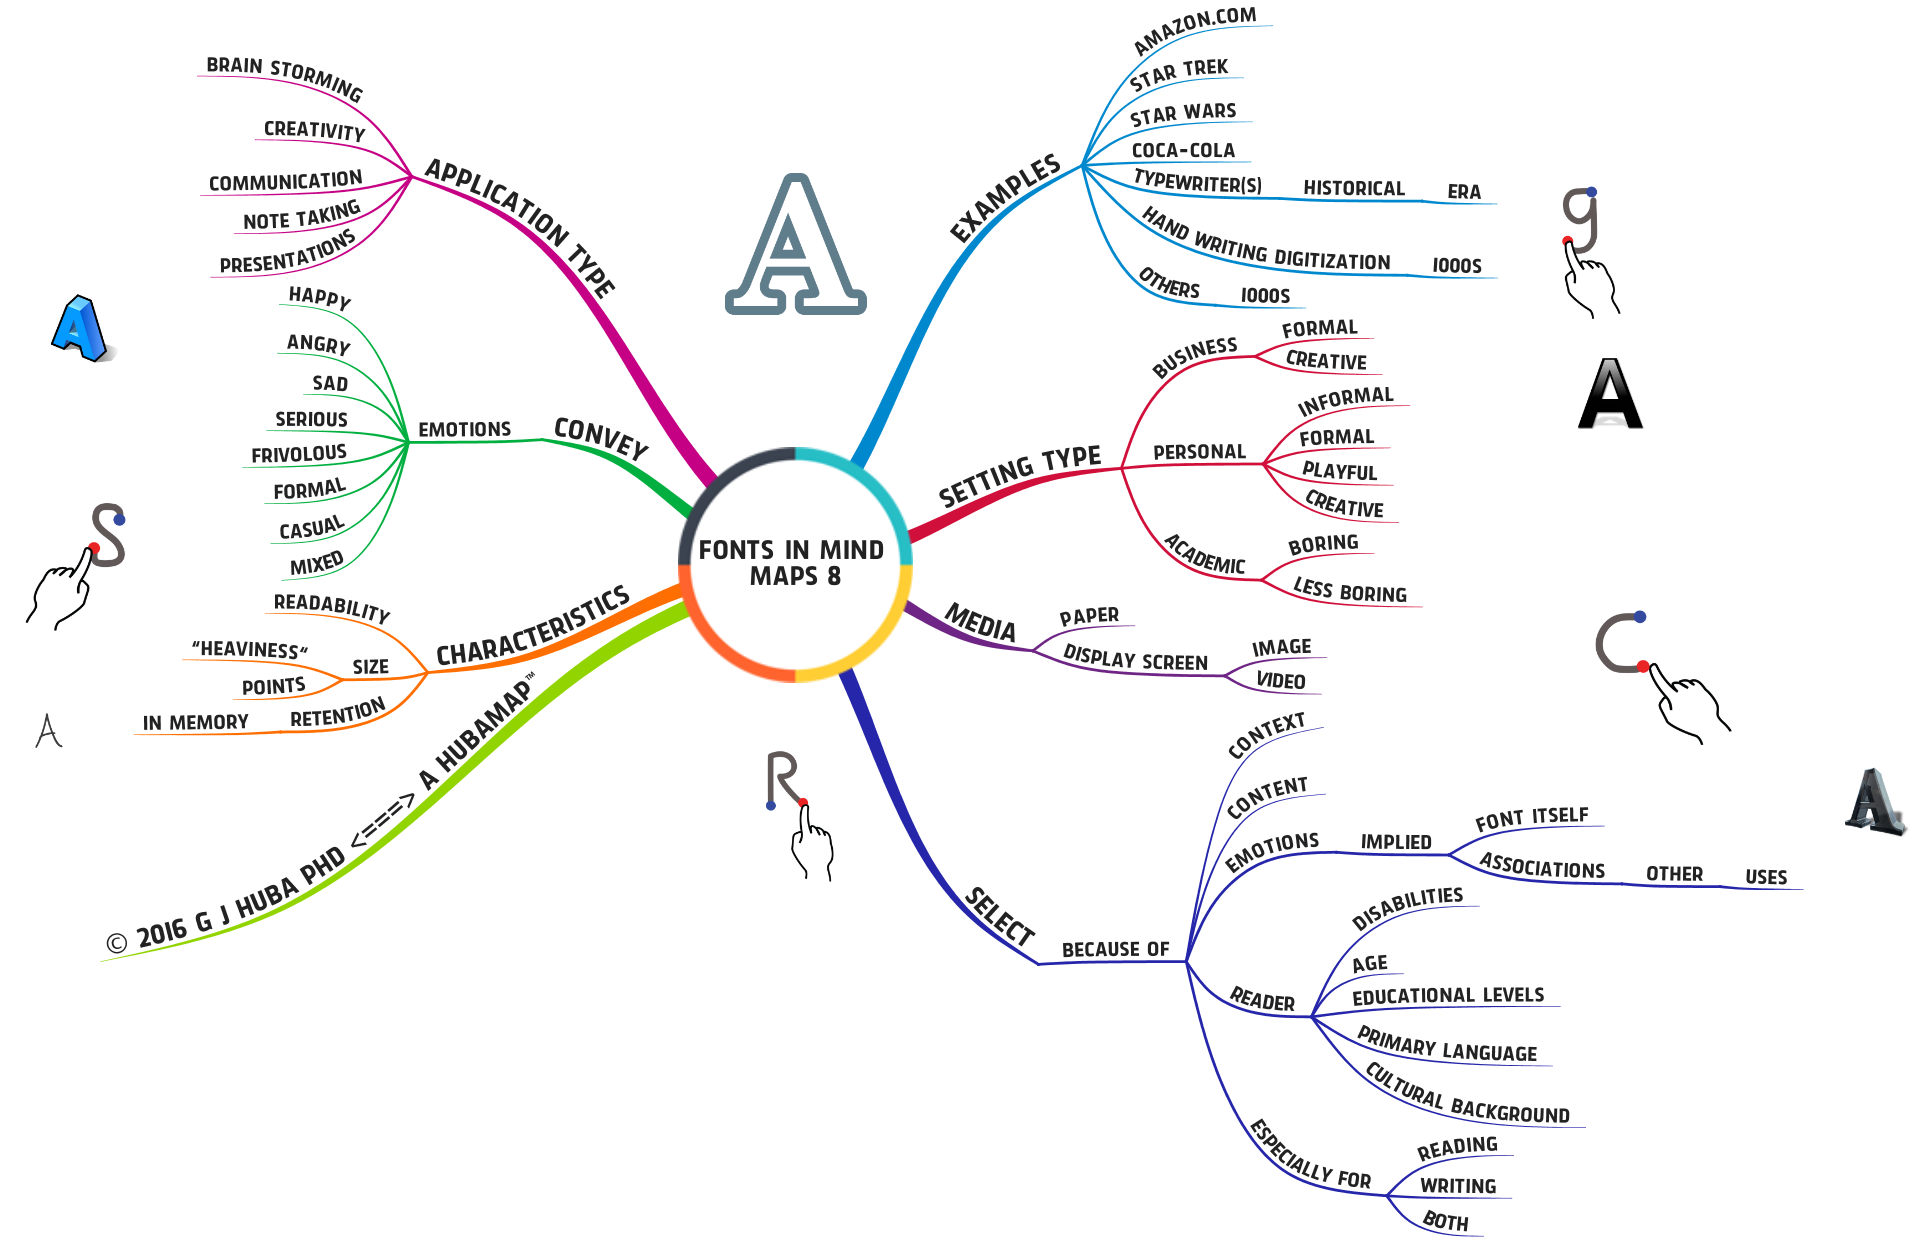 FONTS IN MIND MAPS 8